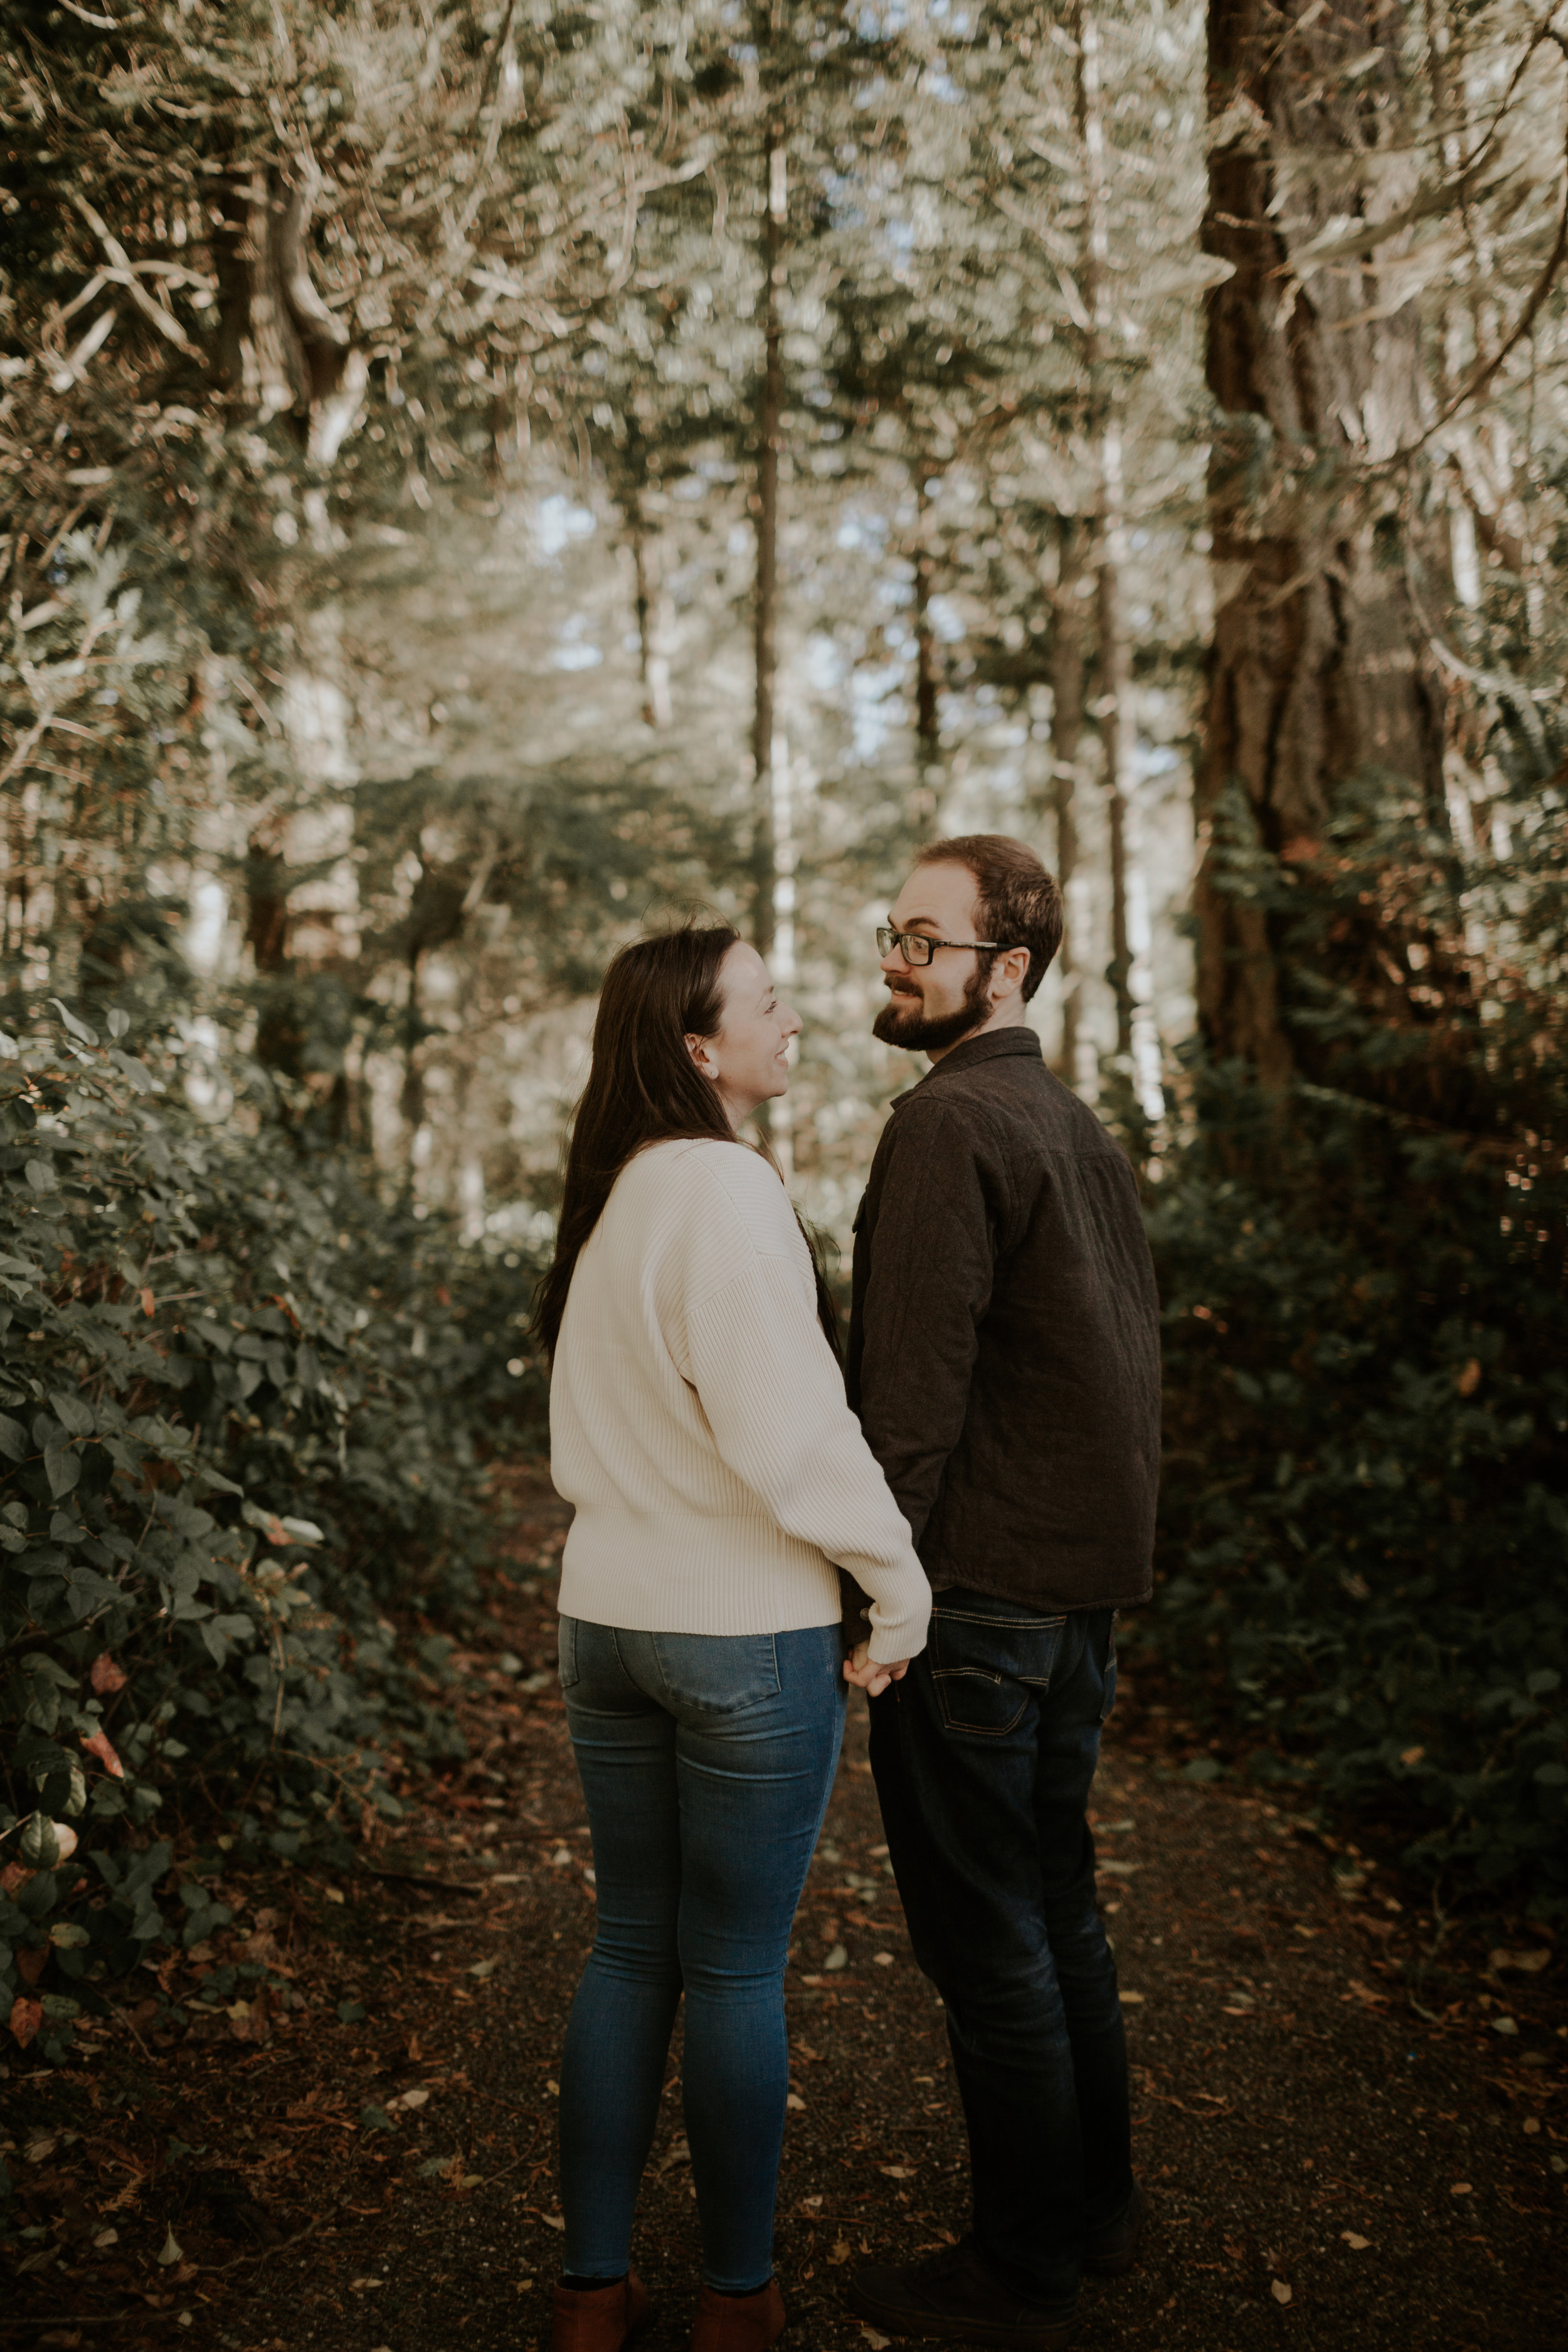 PNW-Olympic National Park-Salt Creek-engagement-Portrait-Port-Angeles-Washington-elopement-photographer-kayla-dawn-photography-kayladawnphoto-wedding-anniversary-photoshoot-olympic-peninsula-41.jpg